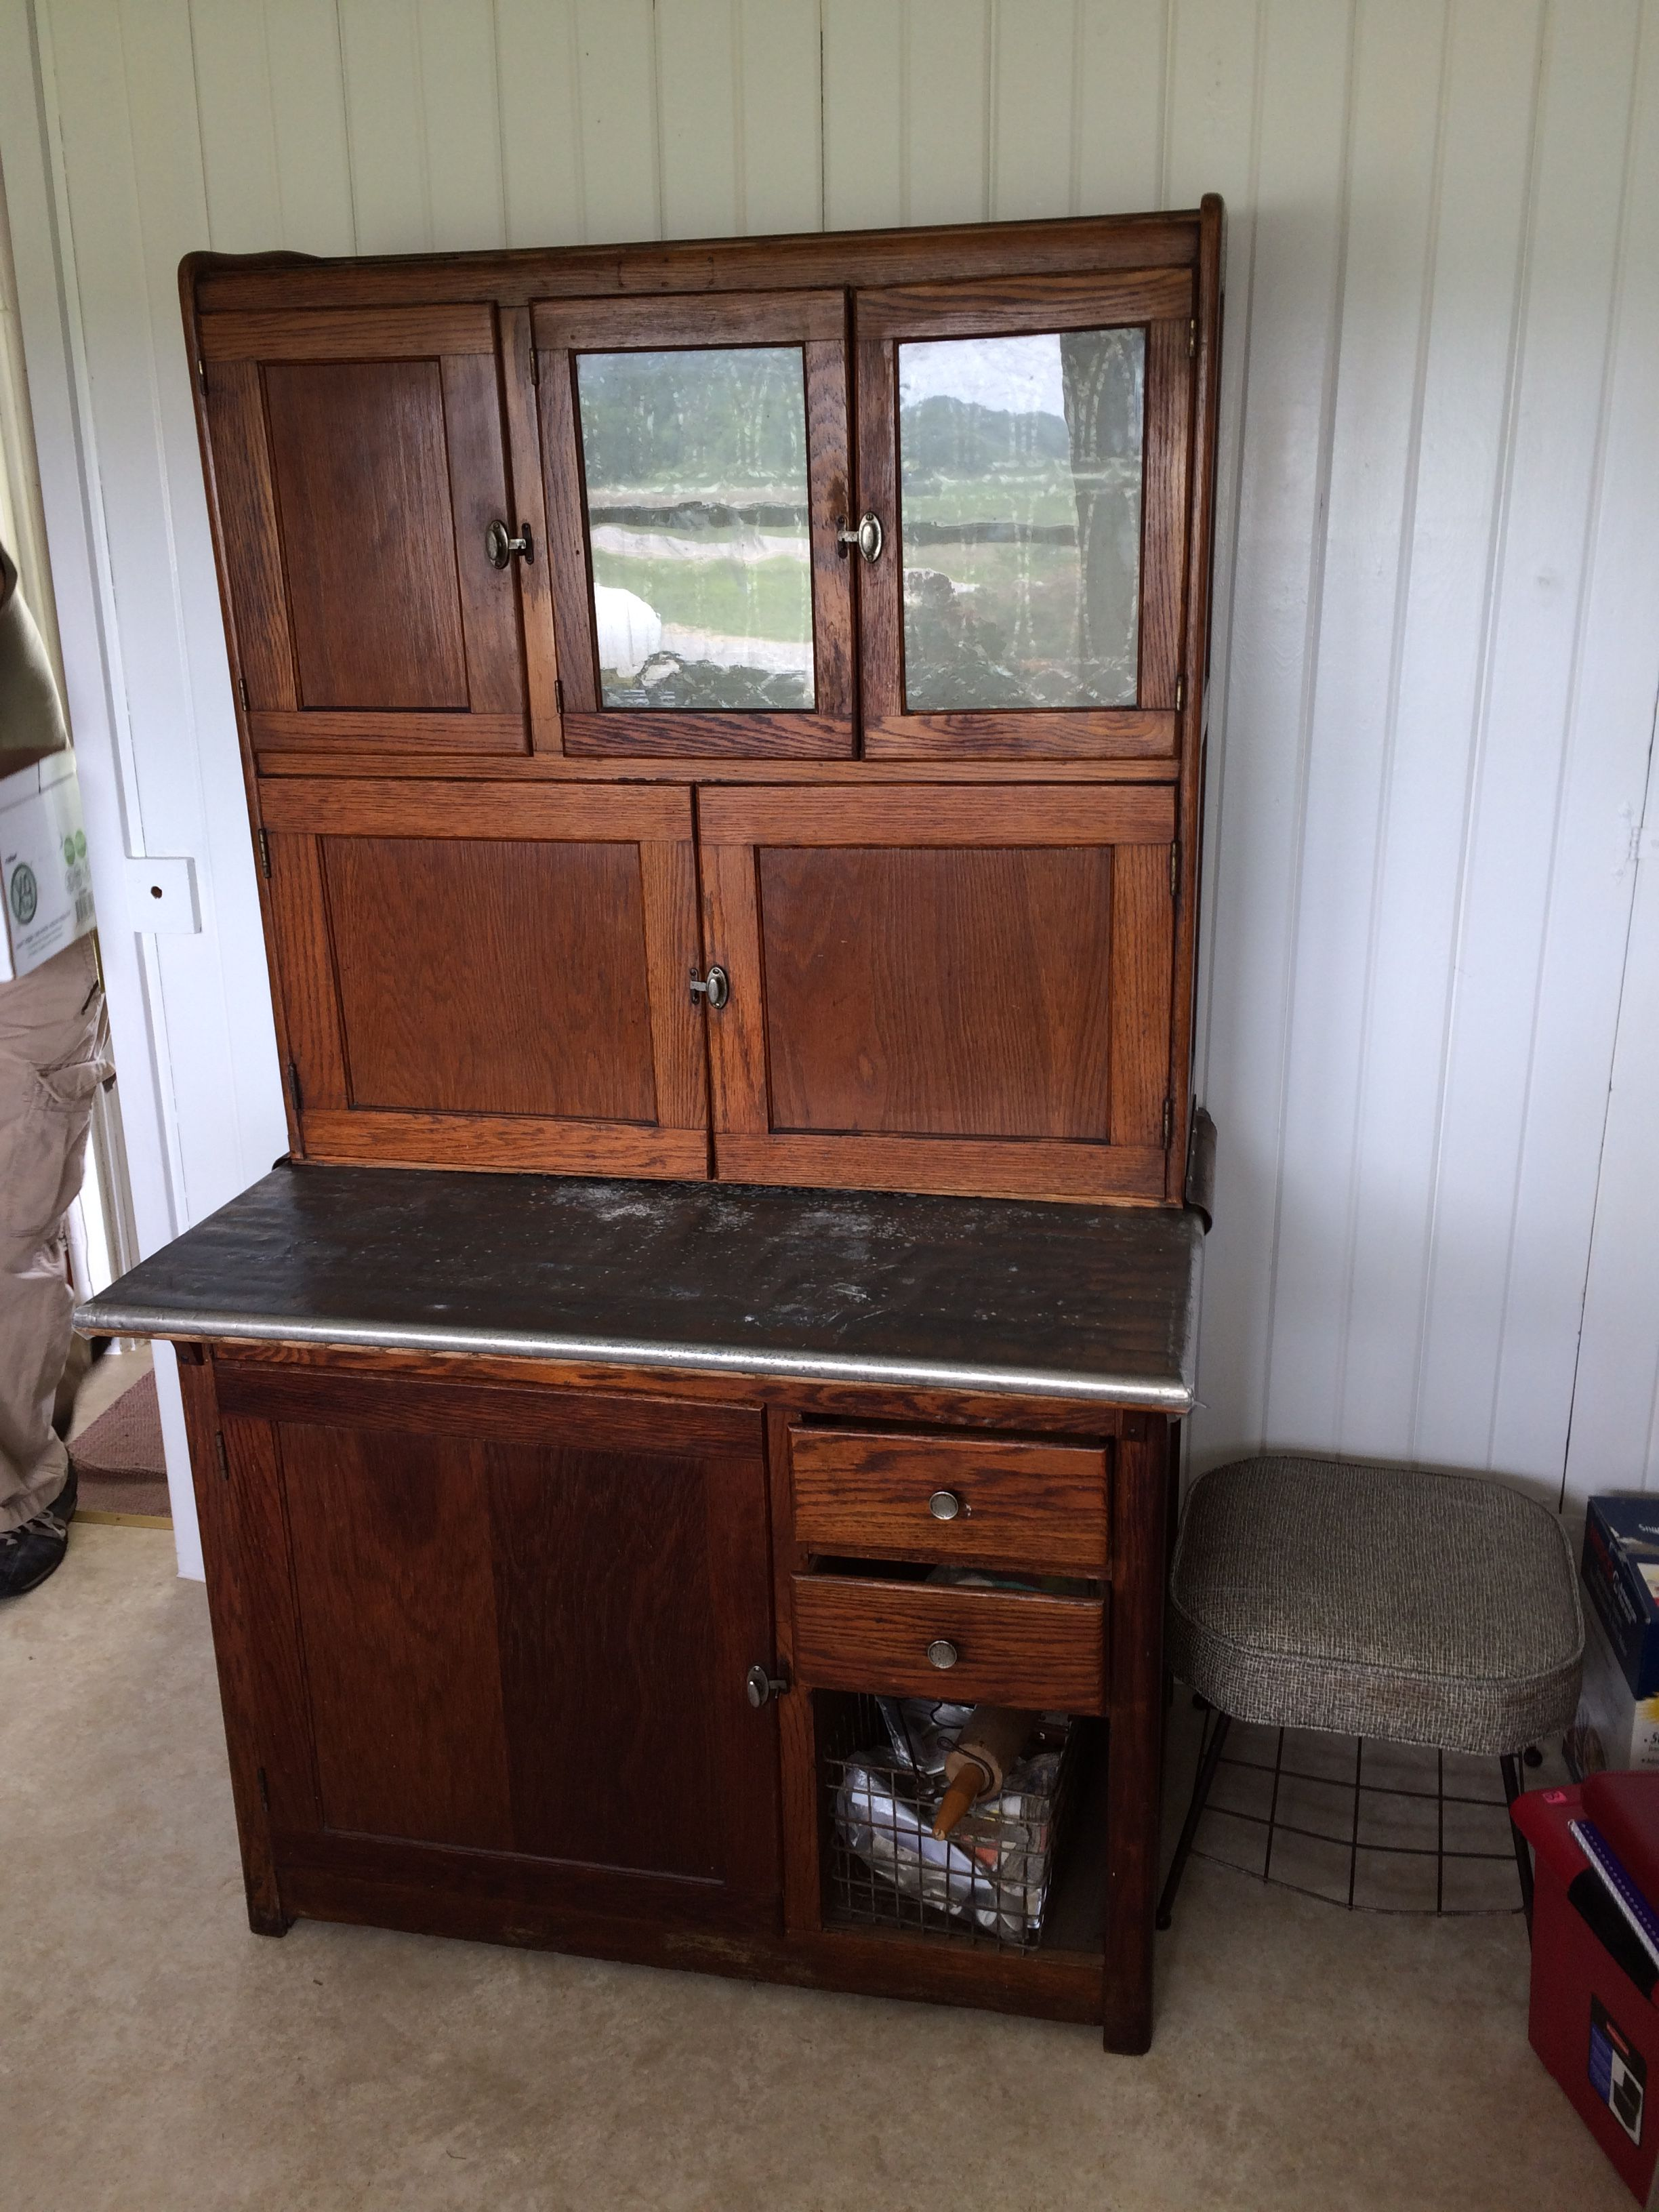 My 1910 Hoosier Cupboard For Sale On In My Shop And On Facebook Rustic Treasures Cupboards For Sale Antique Hoosier Cabinet Hoosier Cabinets